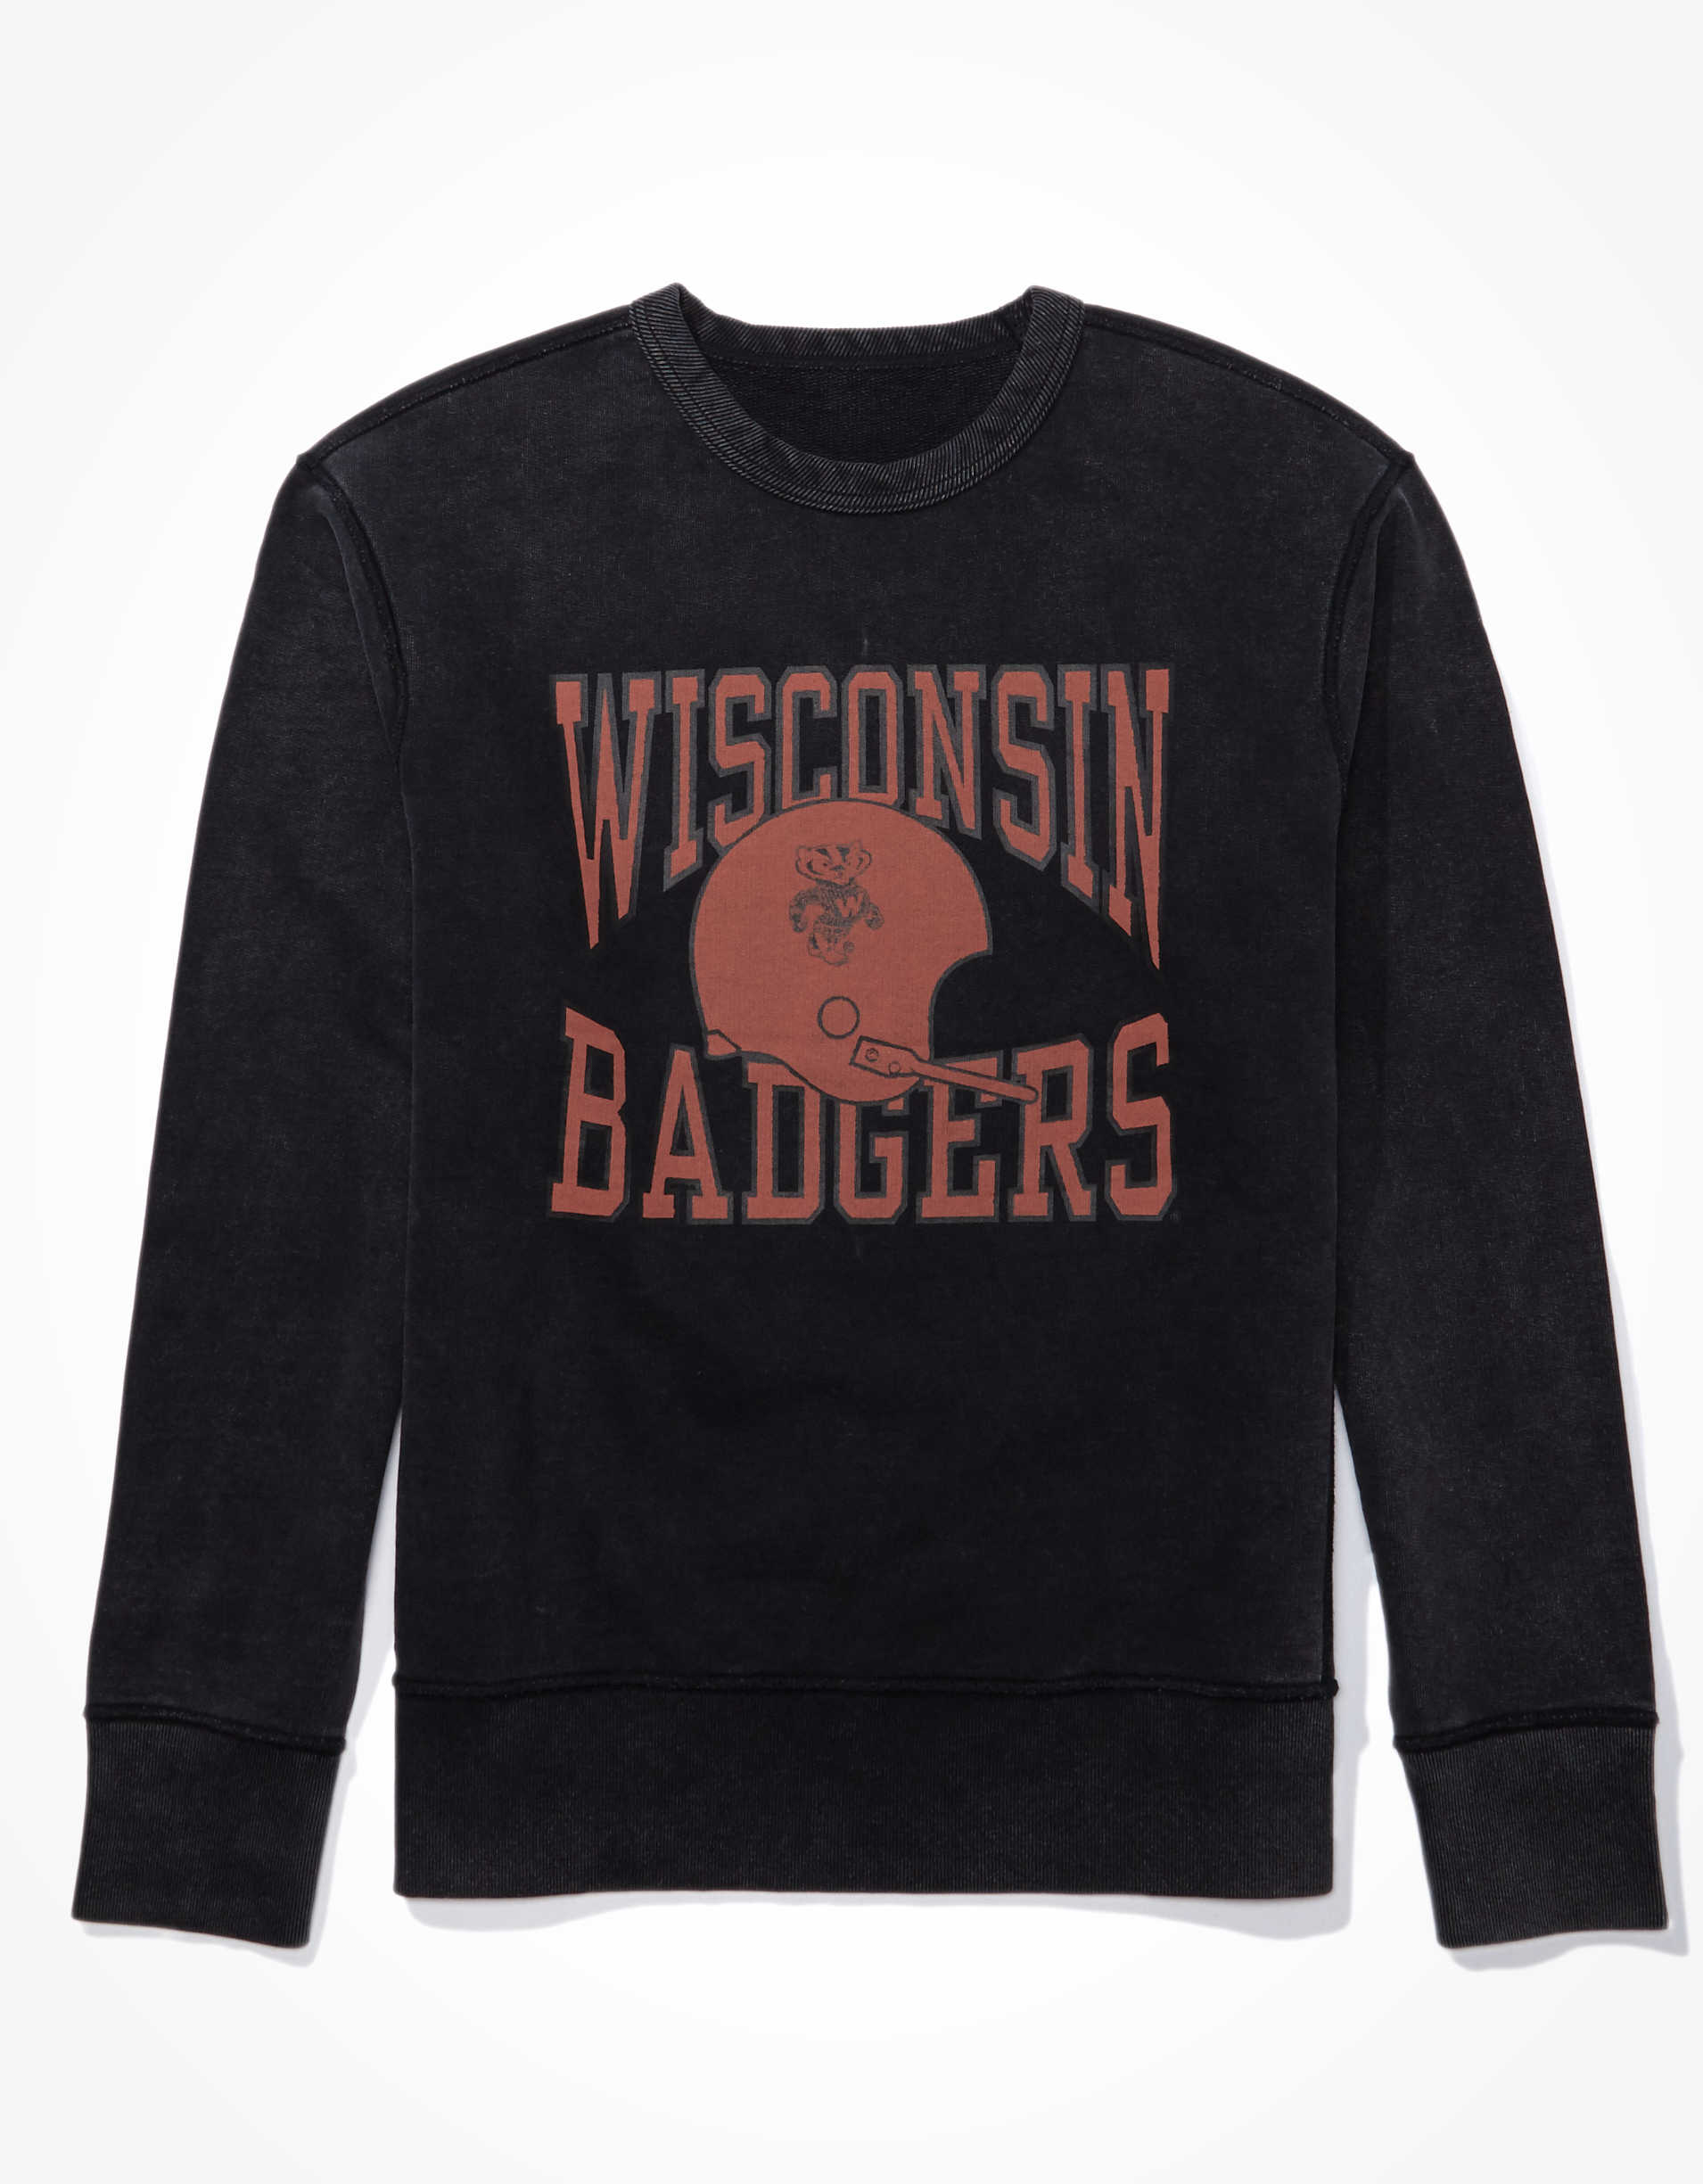 Tailgate Men's Wisconsin Badgers Crew Neck Sweatshirt